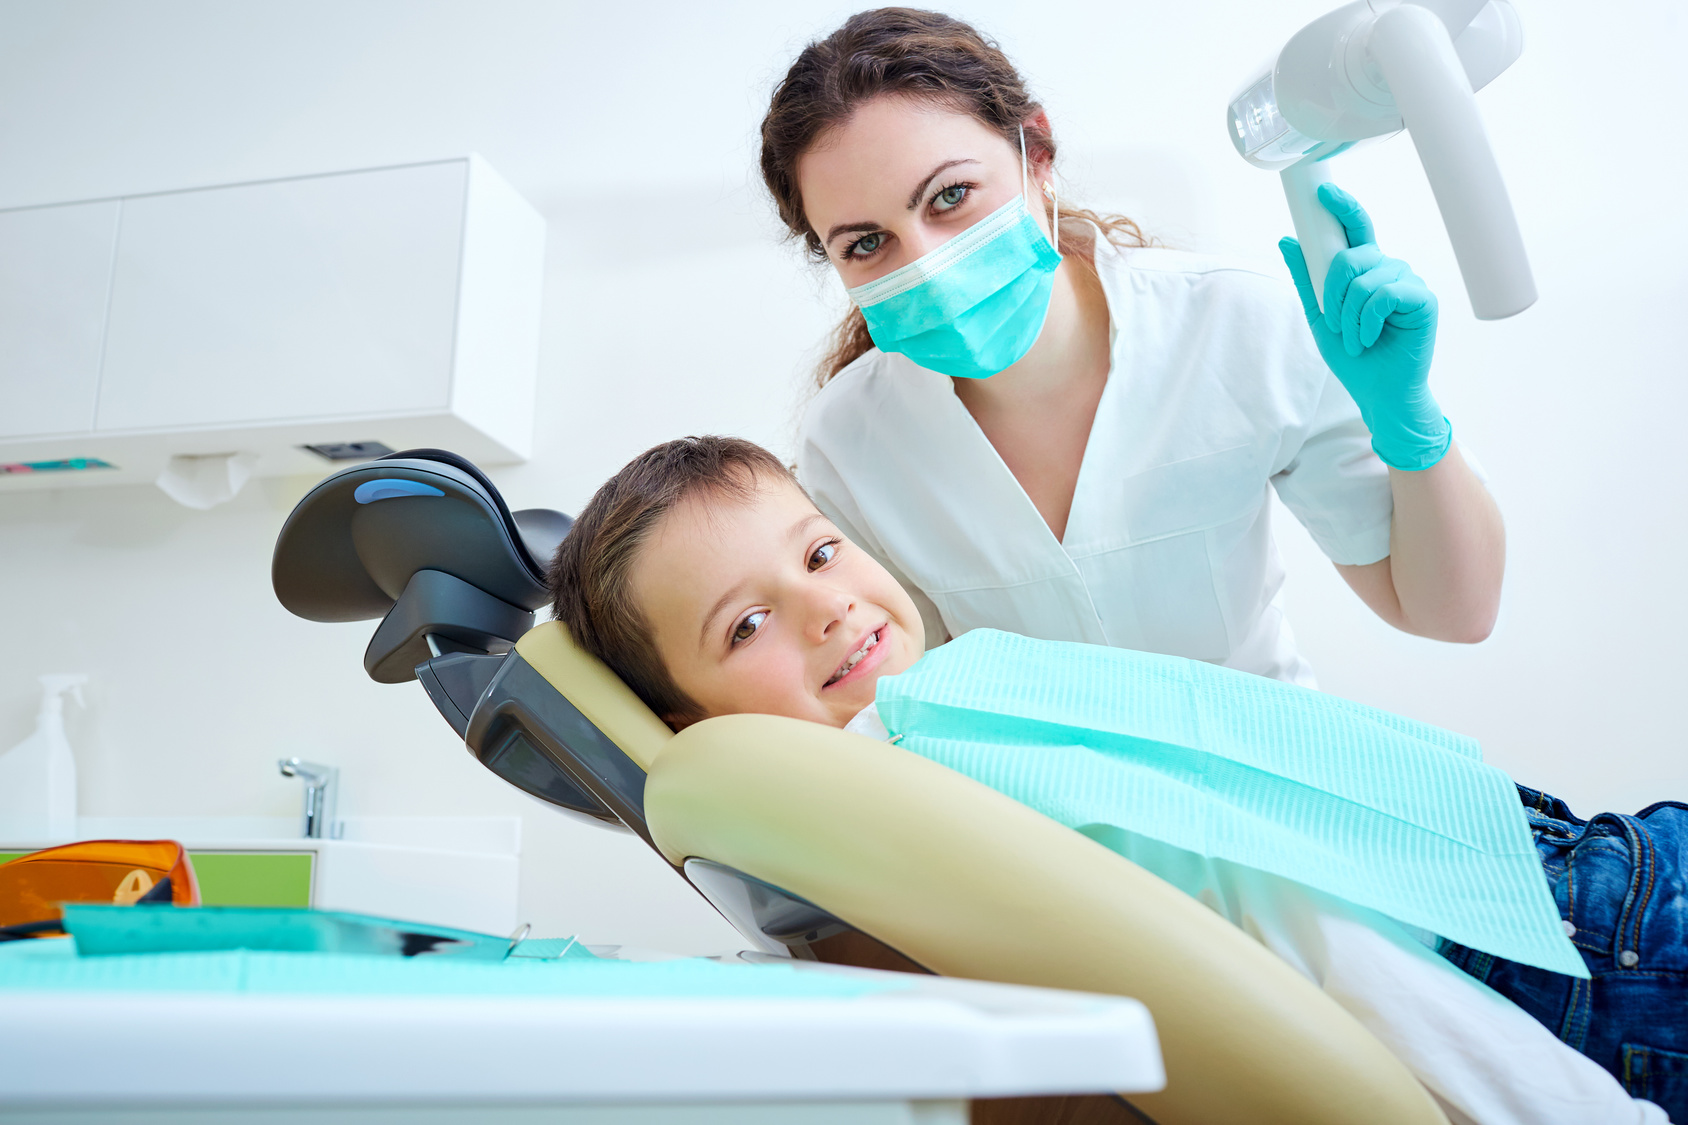 Beautiful kid boy smiling in dentist's chair the office treats teeth. Doctor mask and baby looks at camera.